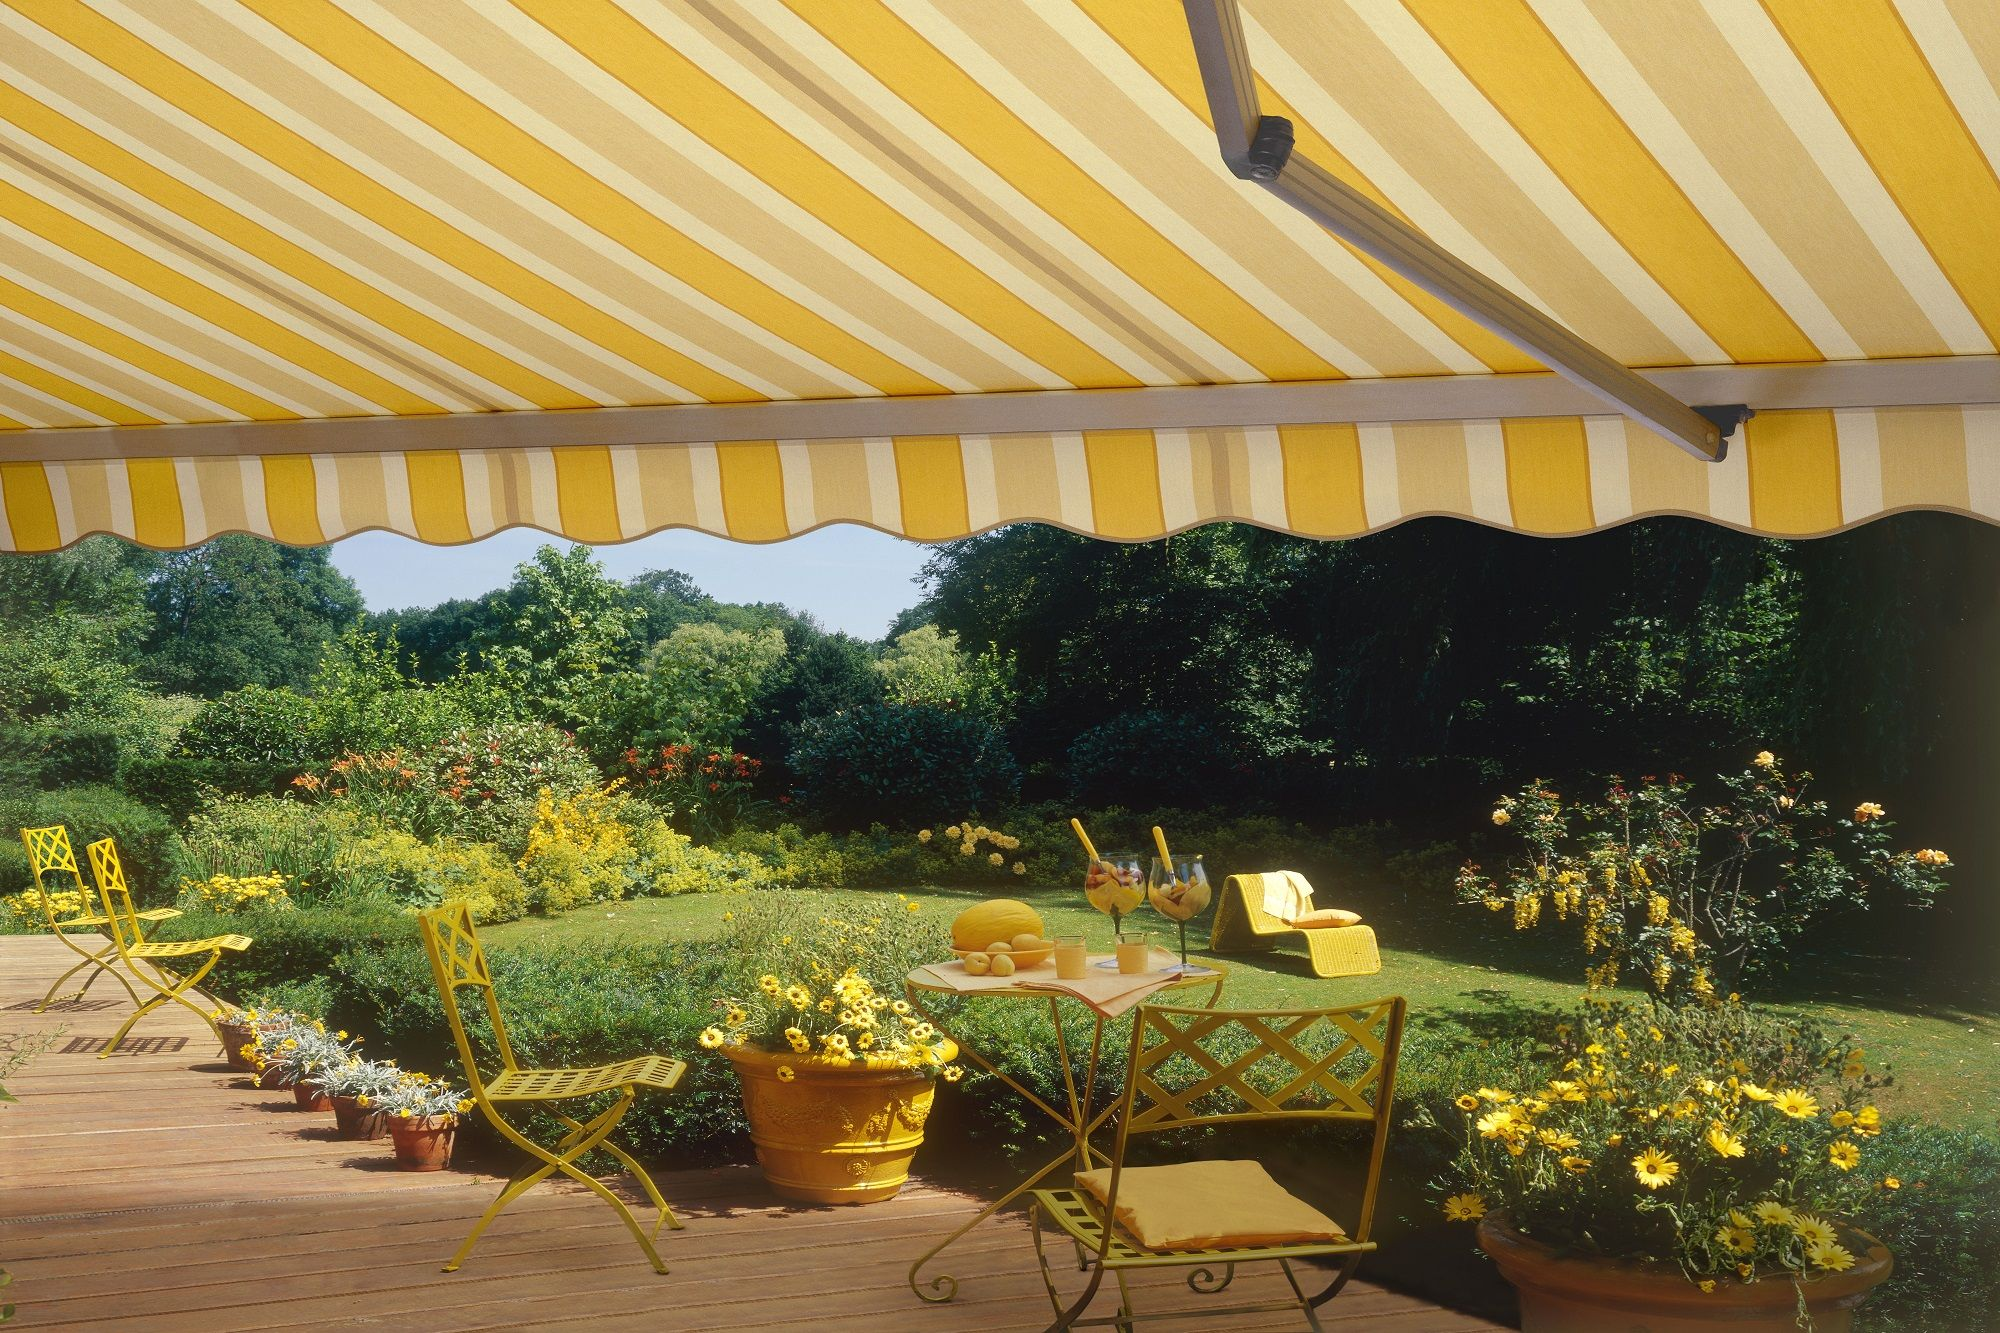 Retractable Folding Lateral Arm Canvas Striped Awning In A German Garden Covered Pergola Deck With Pergola Outdoor Decor